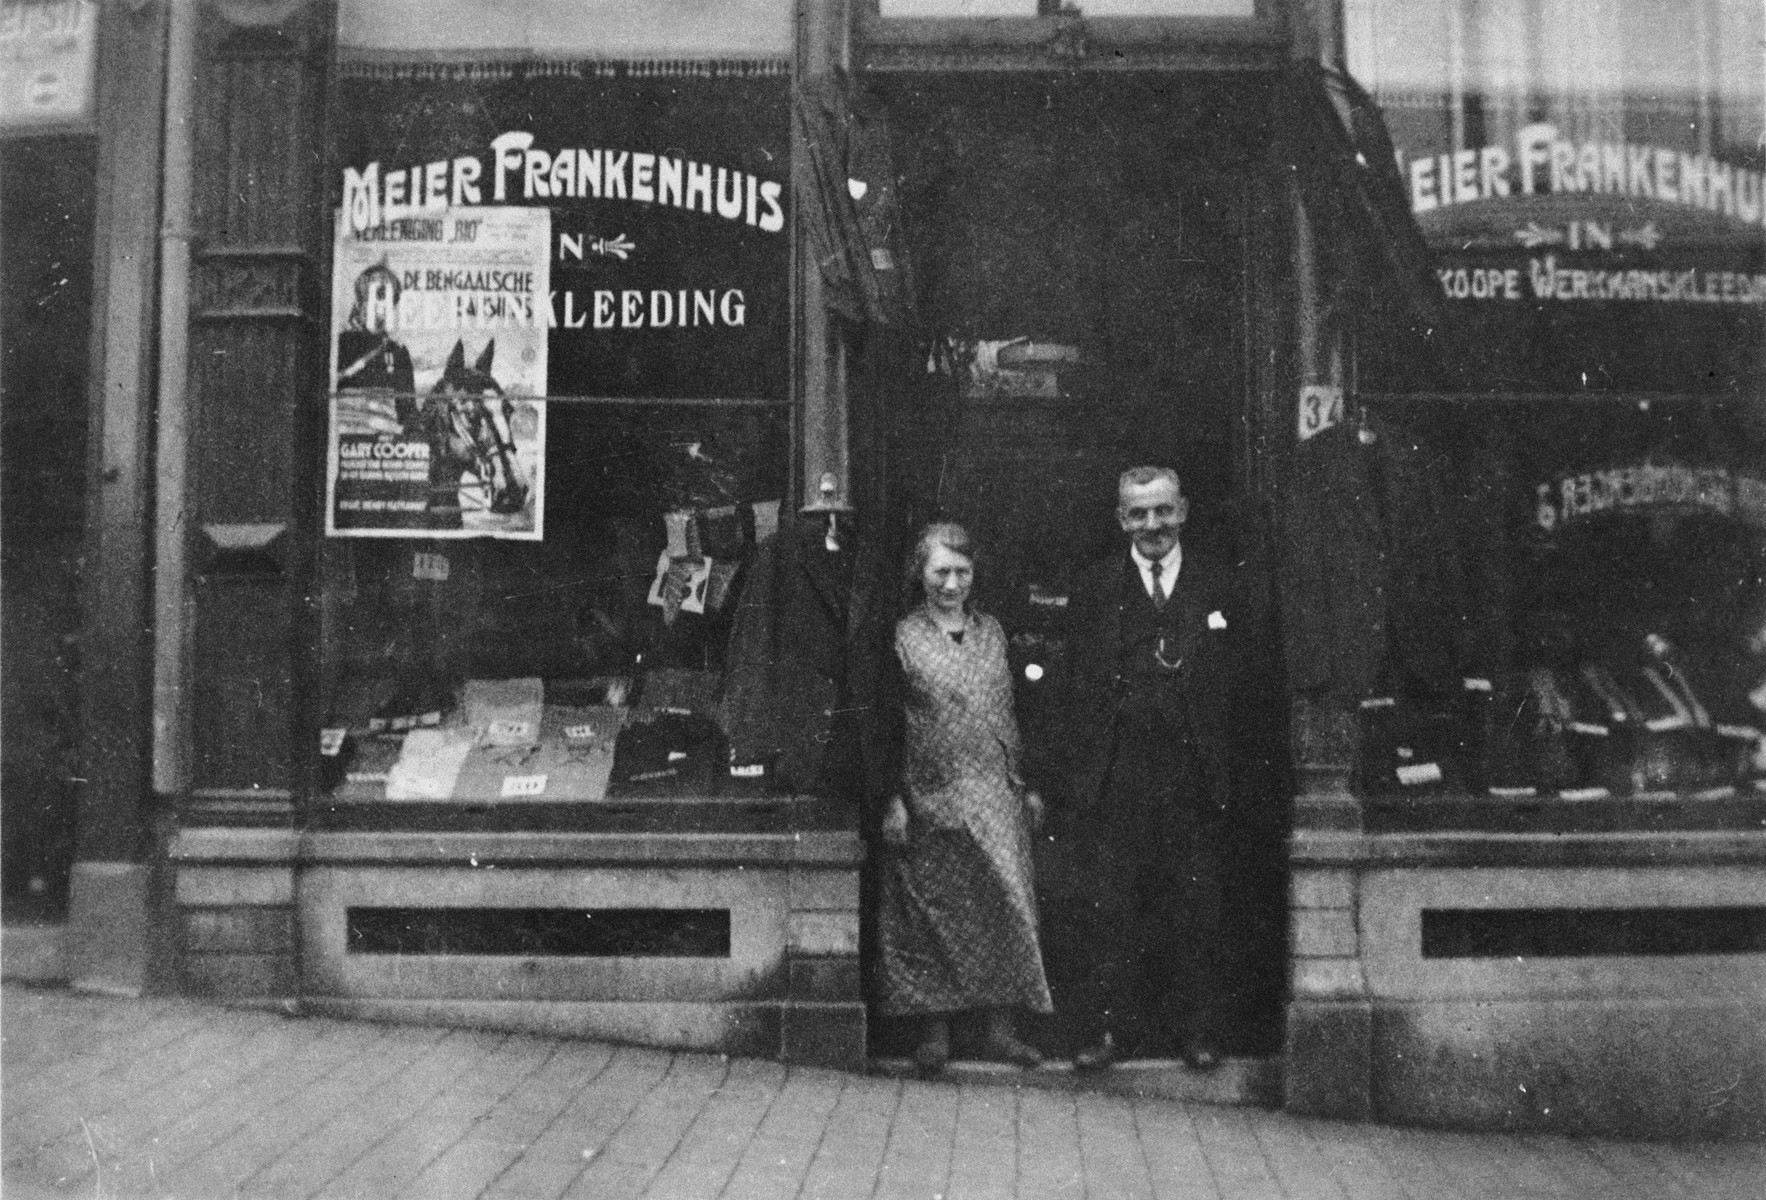 Meir and Wilhelmina Fankenhuis pose outside their clothing shop in Nijmegen, The Netherlands.